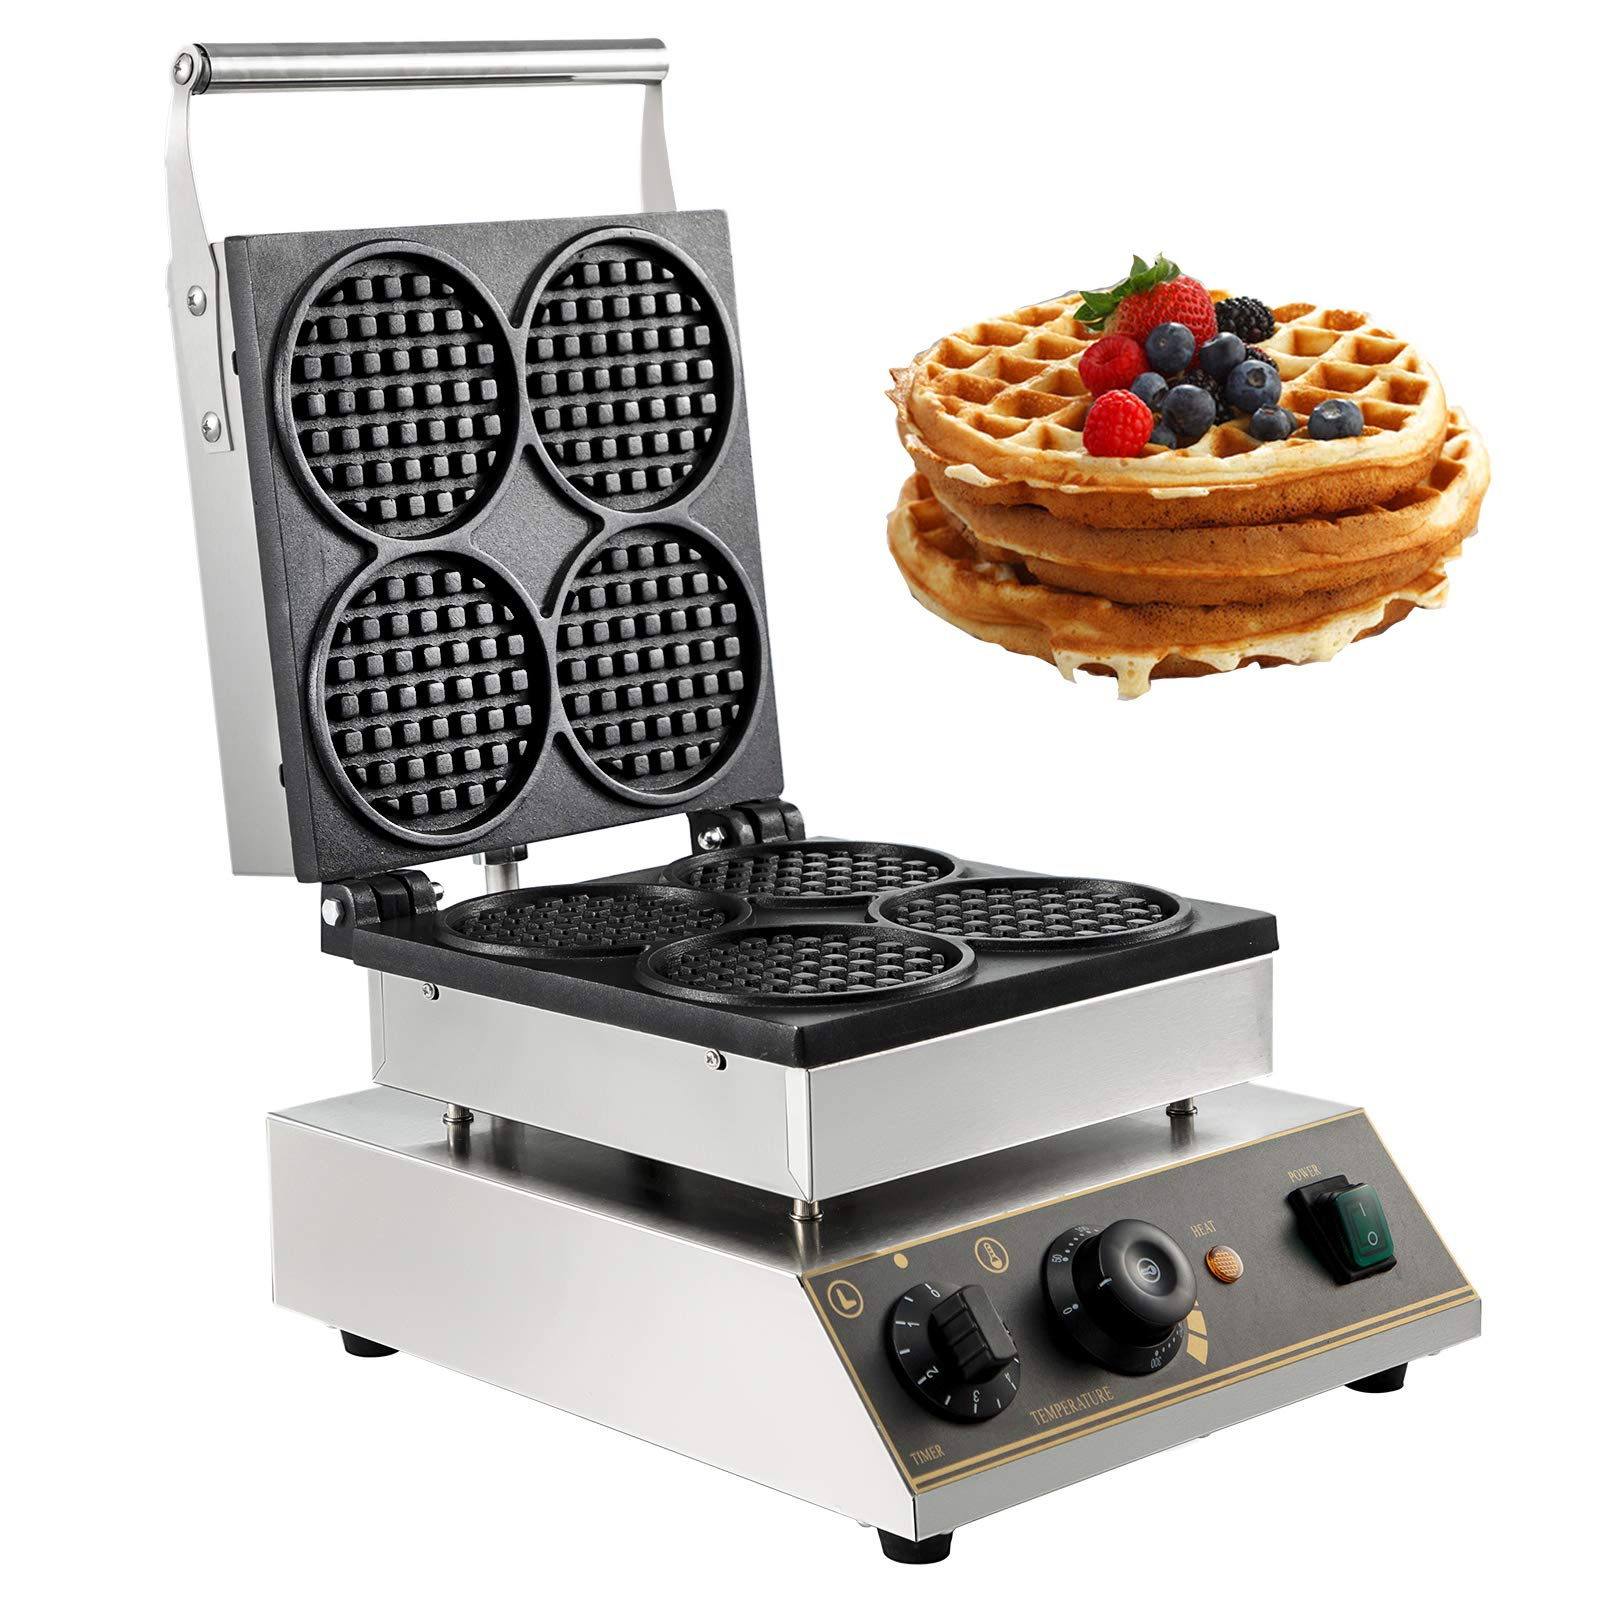 VBENLEM Commercial Round Waffle Maker 4pcs Nonstick Electric Waffle Maker Machine Stainless Steel 110V Temperature and Time Control Heart Belgian Waffle Maker Suitable for Restaurant Snack Bar Family by VBENLEM